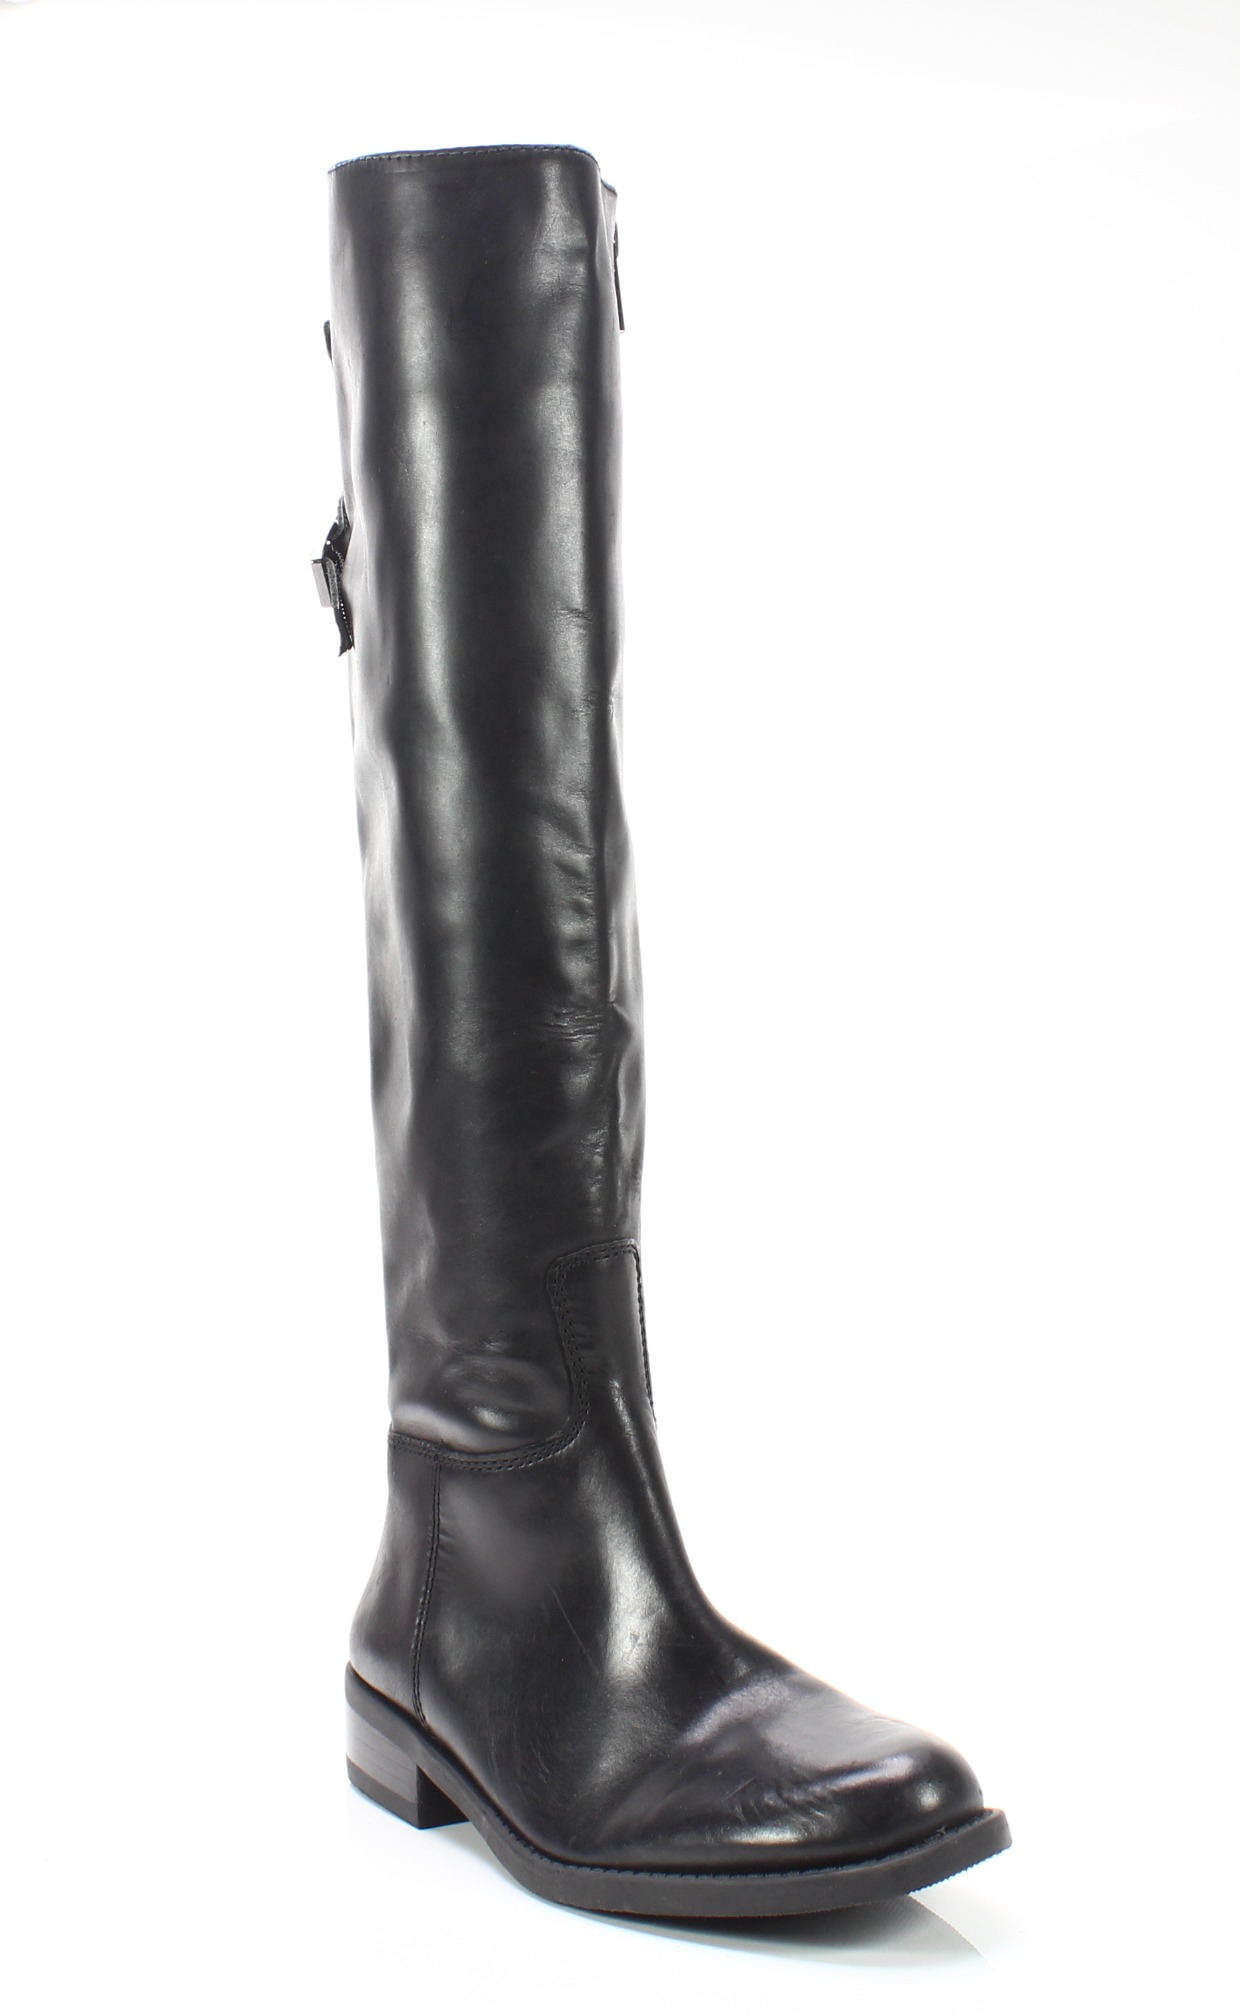 69936eeed873 Vince Camuto NEW Black Women s Size 5M Kadia Leather Knee High Boots  198-   015